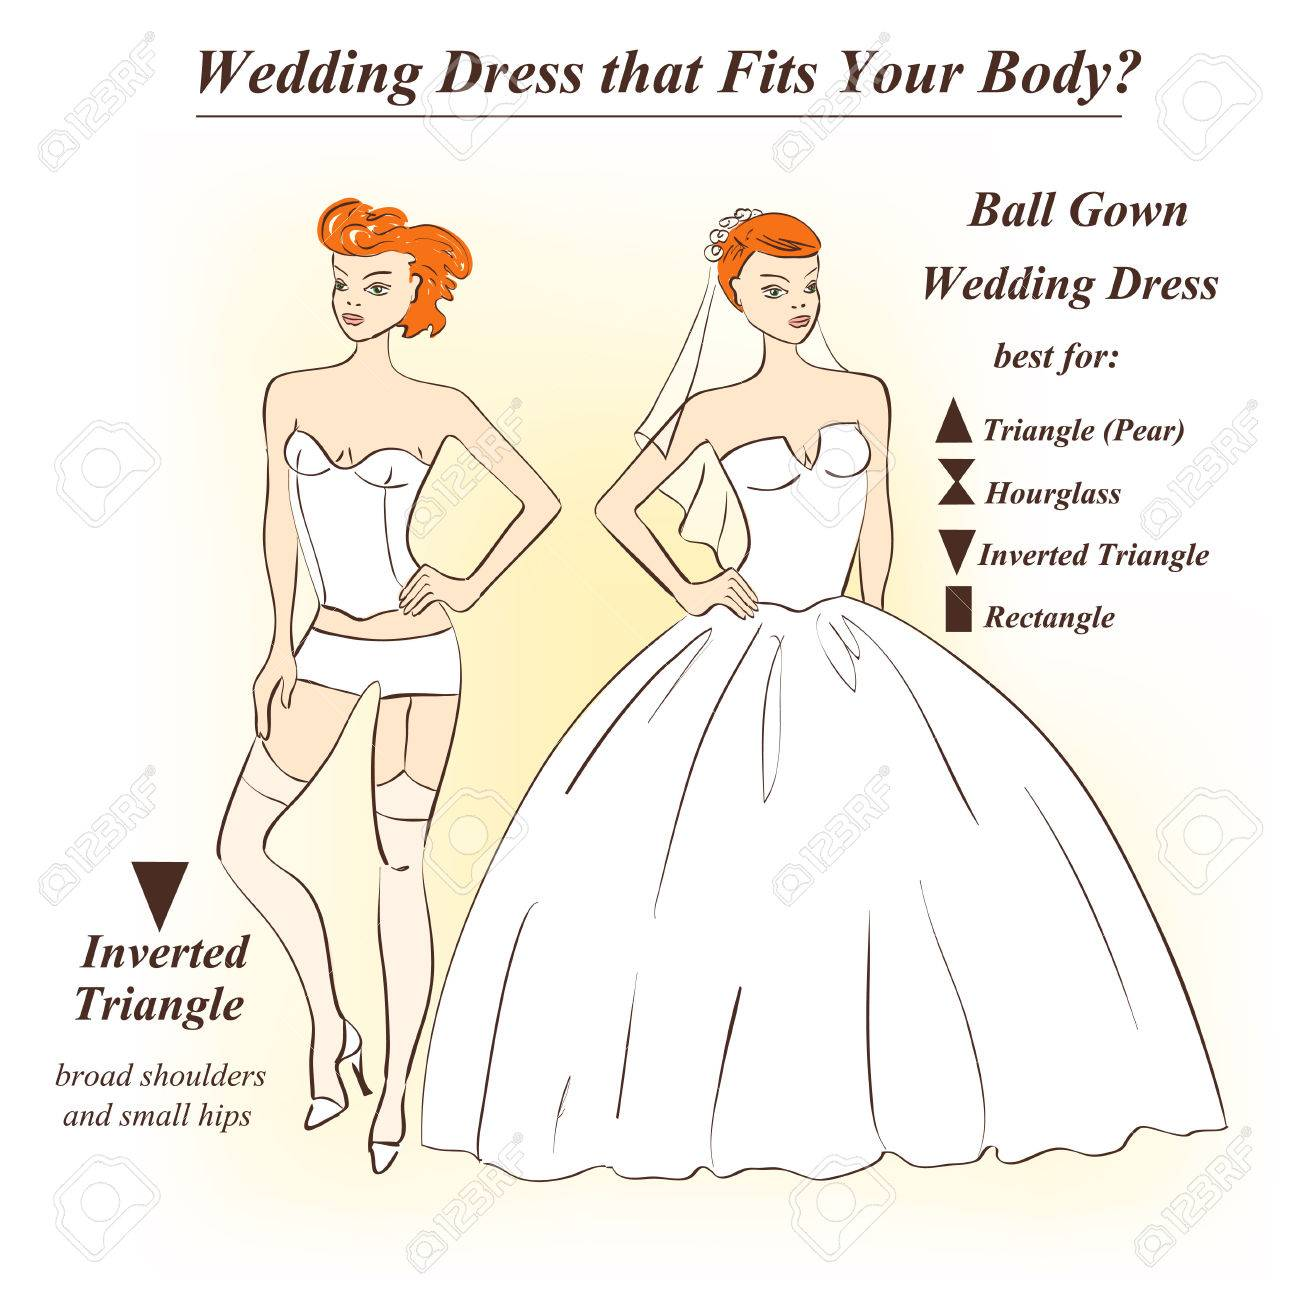 ffa2b2b8c3cf9 Infographic of Ball Gown wedding dress that fits for female body shape types.  Illustration of